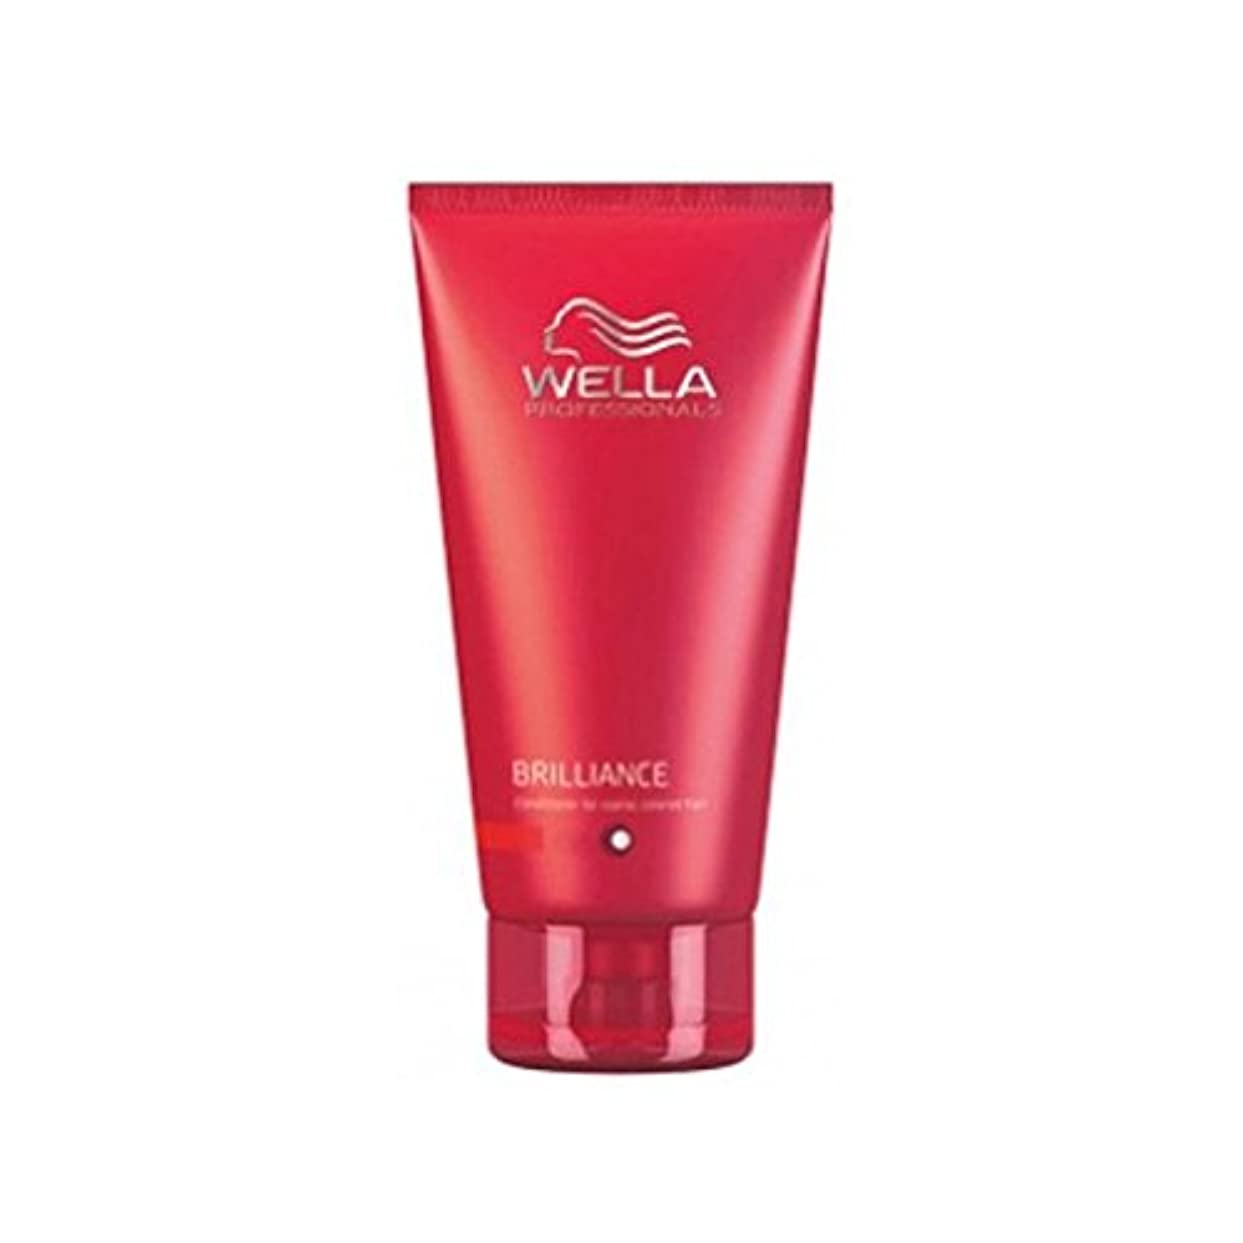 広げるブラジャーレギュラーWella Professionals Brilliance Conditioner For Fine To Normal, Coloured Hair (200ml) (Pack of 6) - ウェラの専門家が通常に...